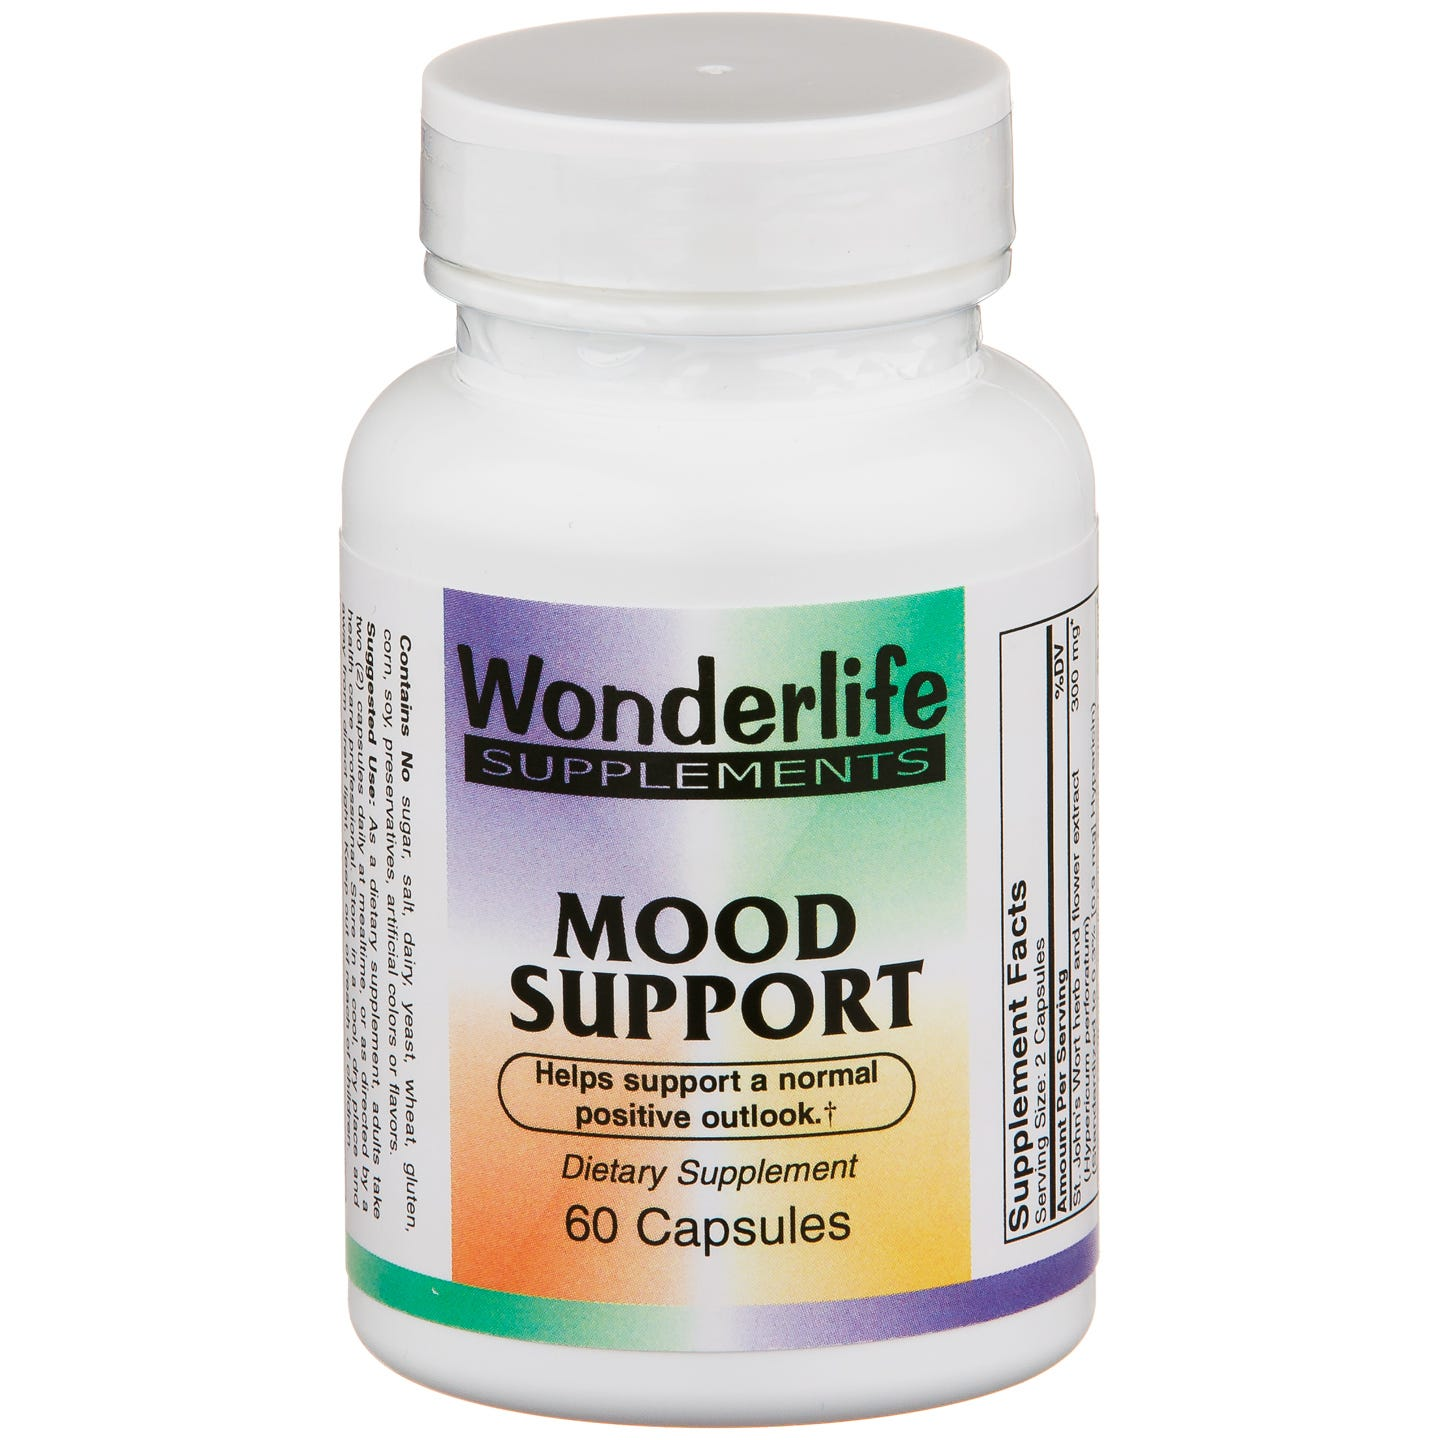 Mood Support (60 ct) - Wonderlife - Rapid Diet Weight Loss Products Shop